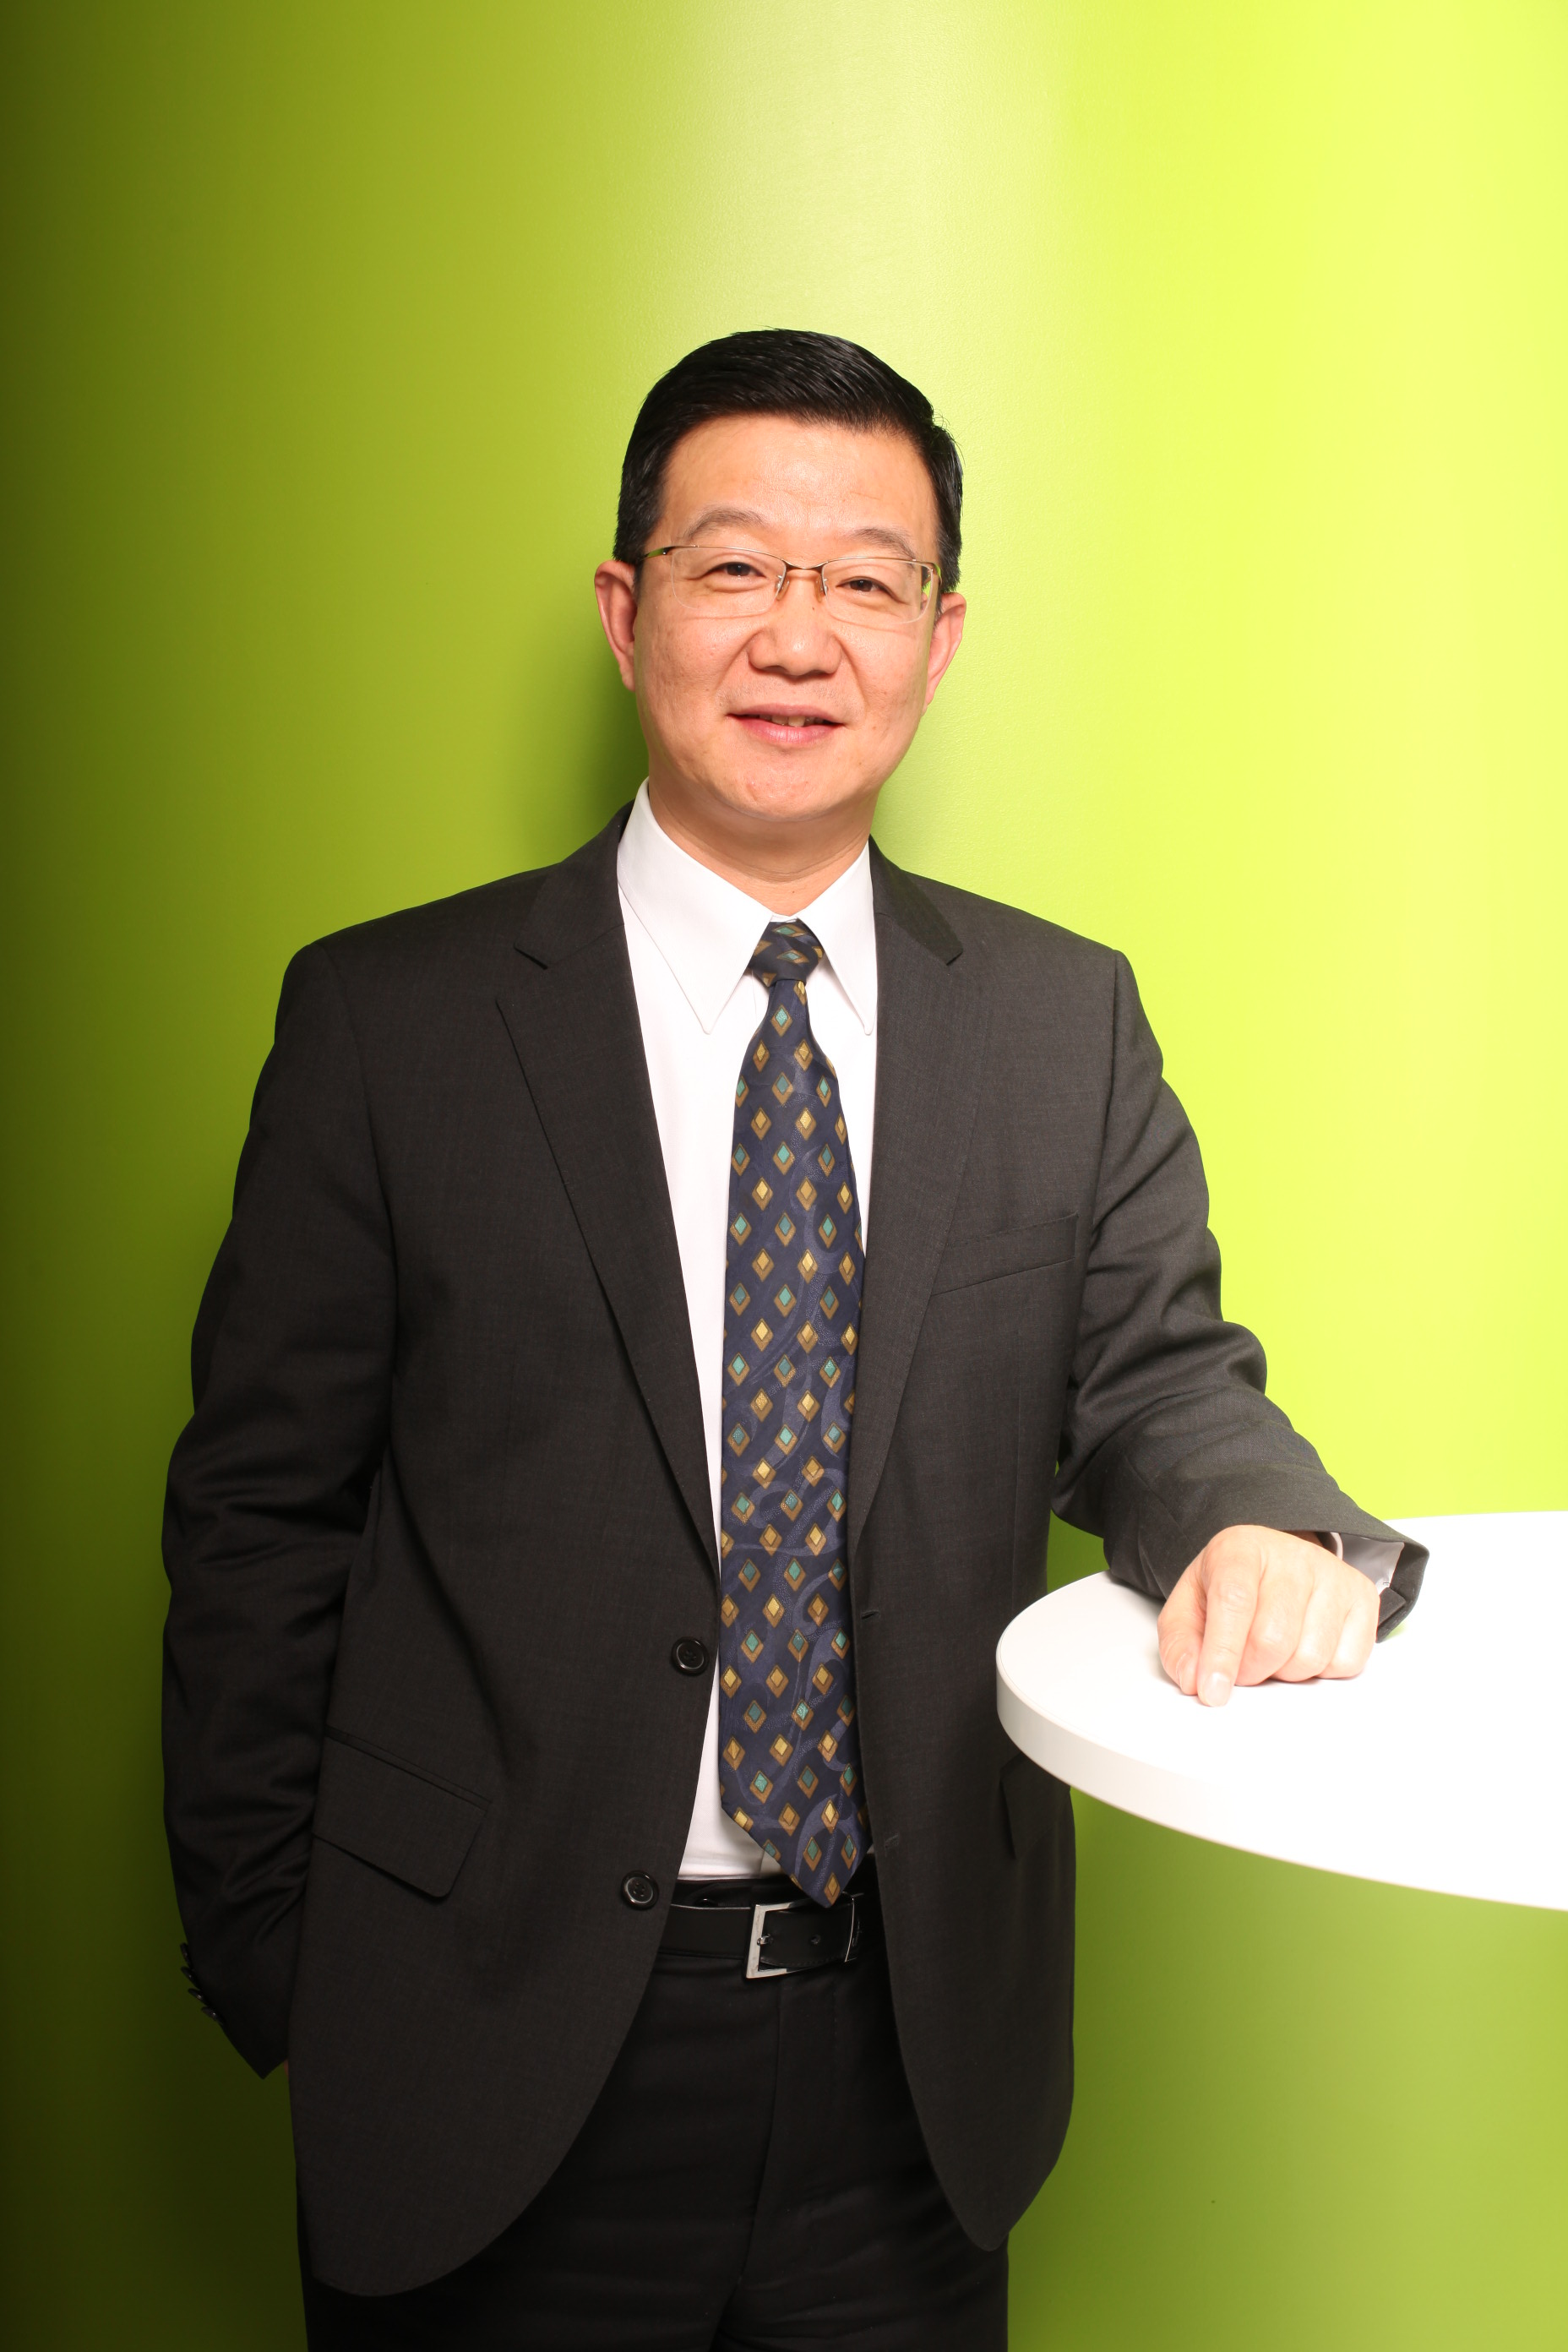 Wang Chenjie, general manager of Informatica Greater Chin